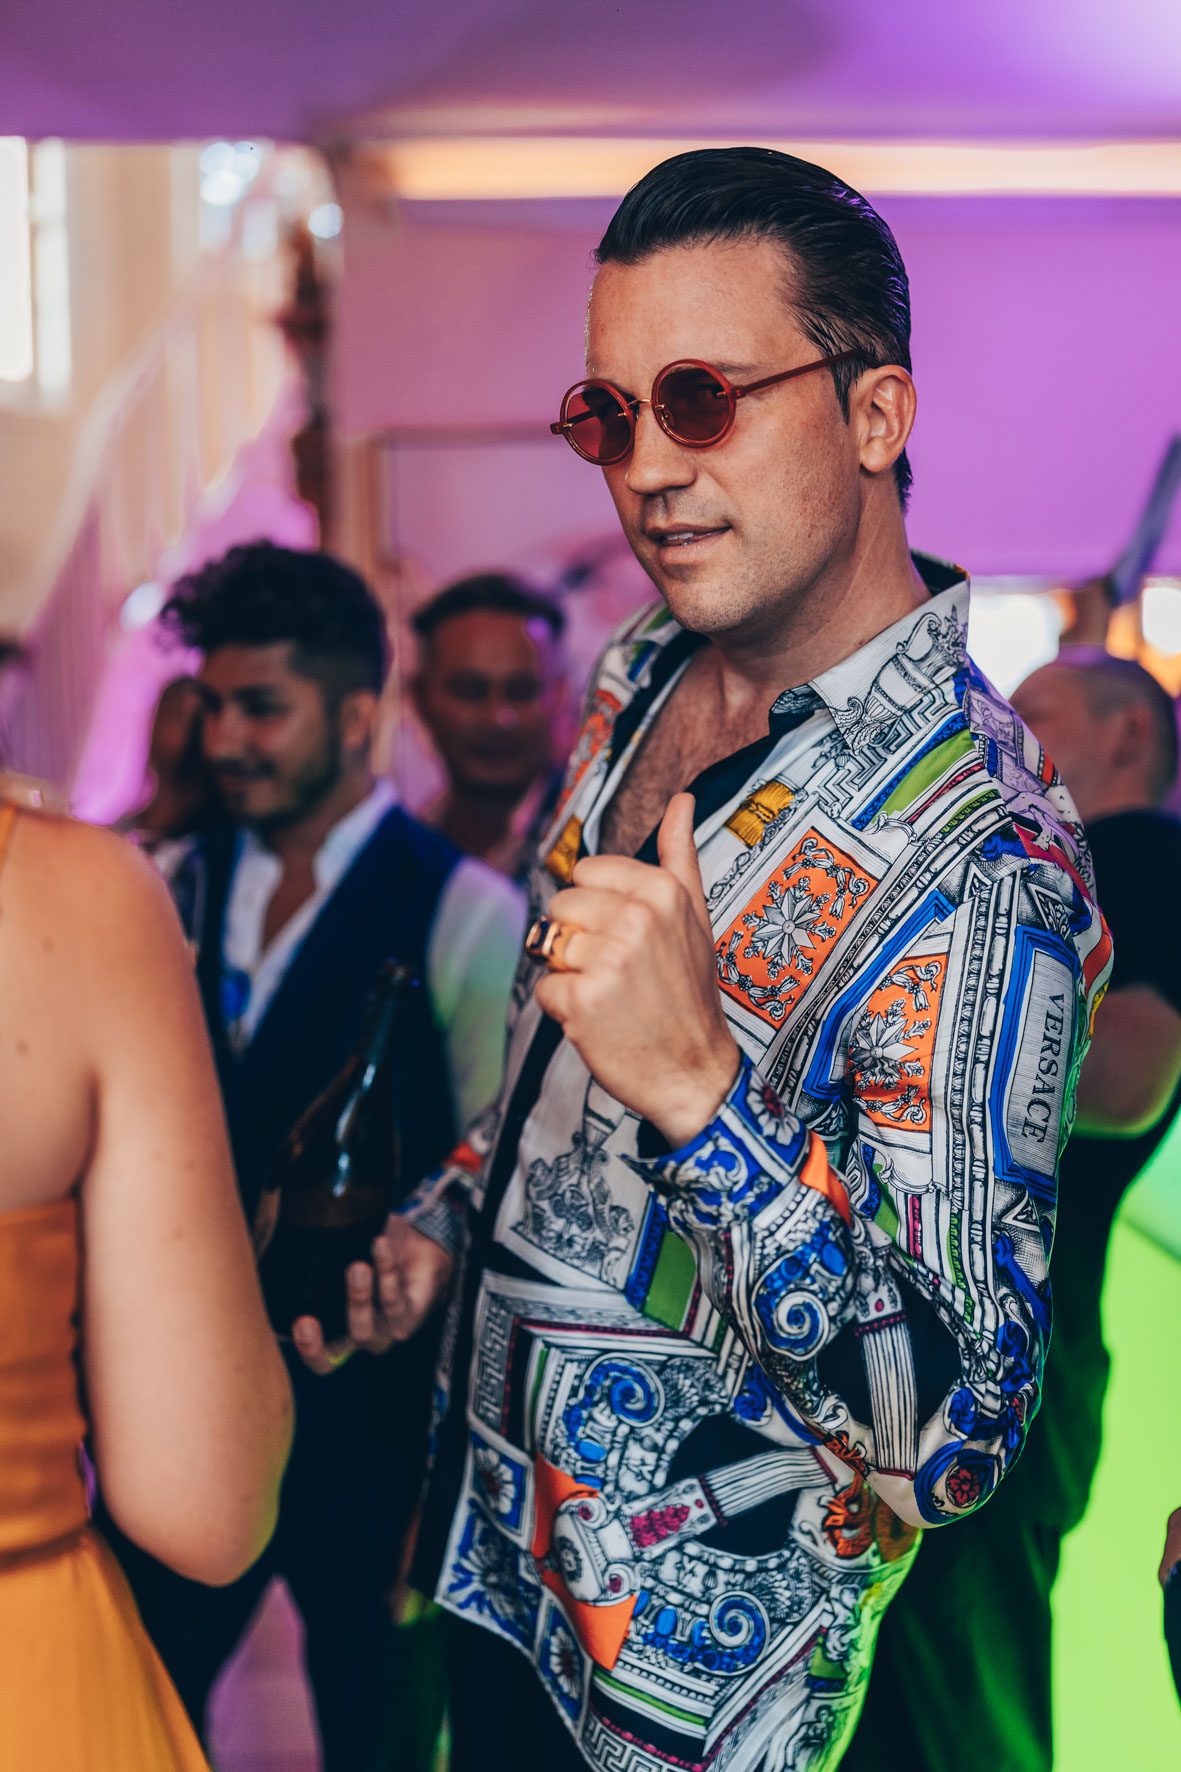 Konrad-lifestyle-art-basel-%22belvedere-secret-sunday%22-2019-98.jpg